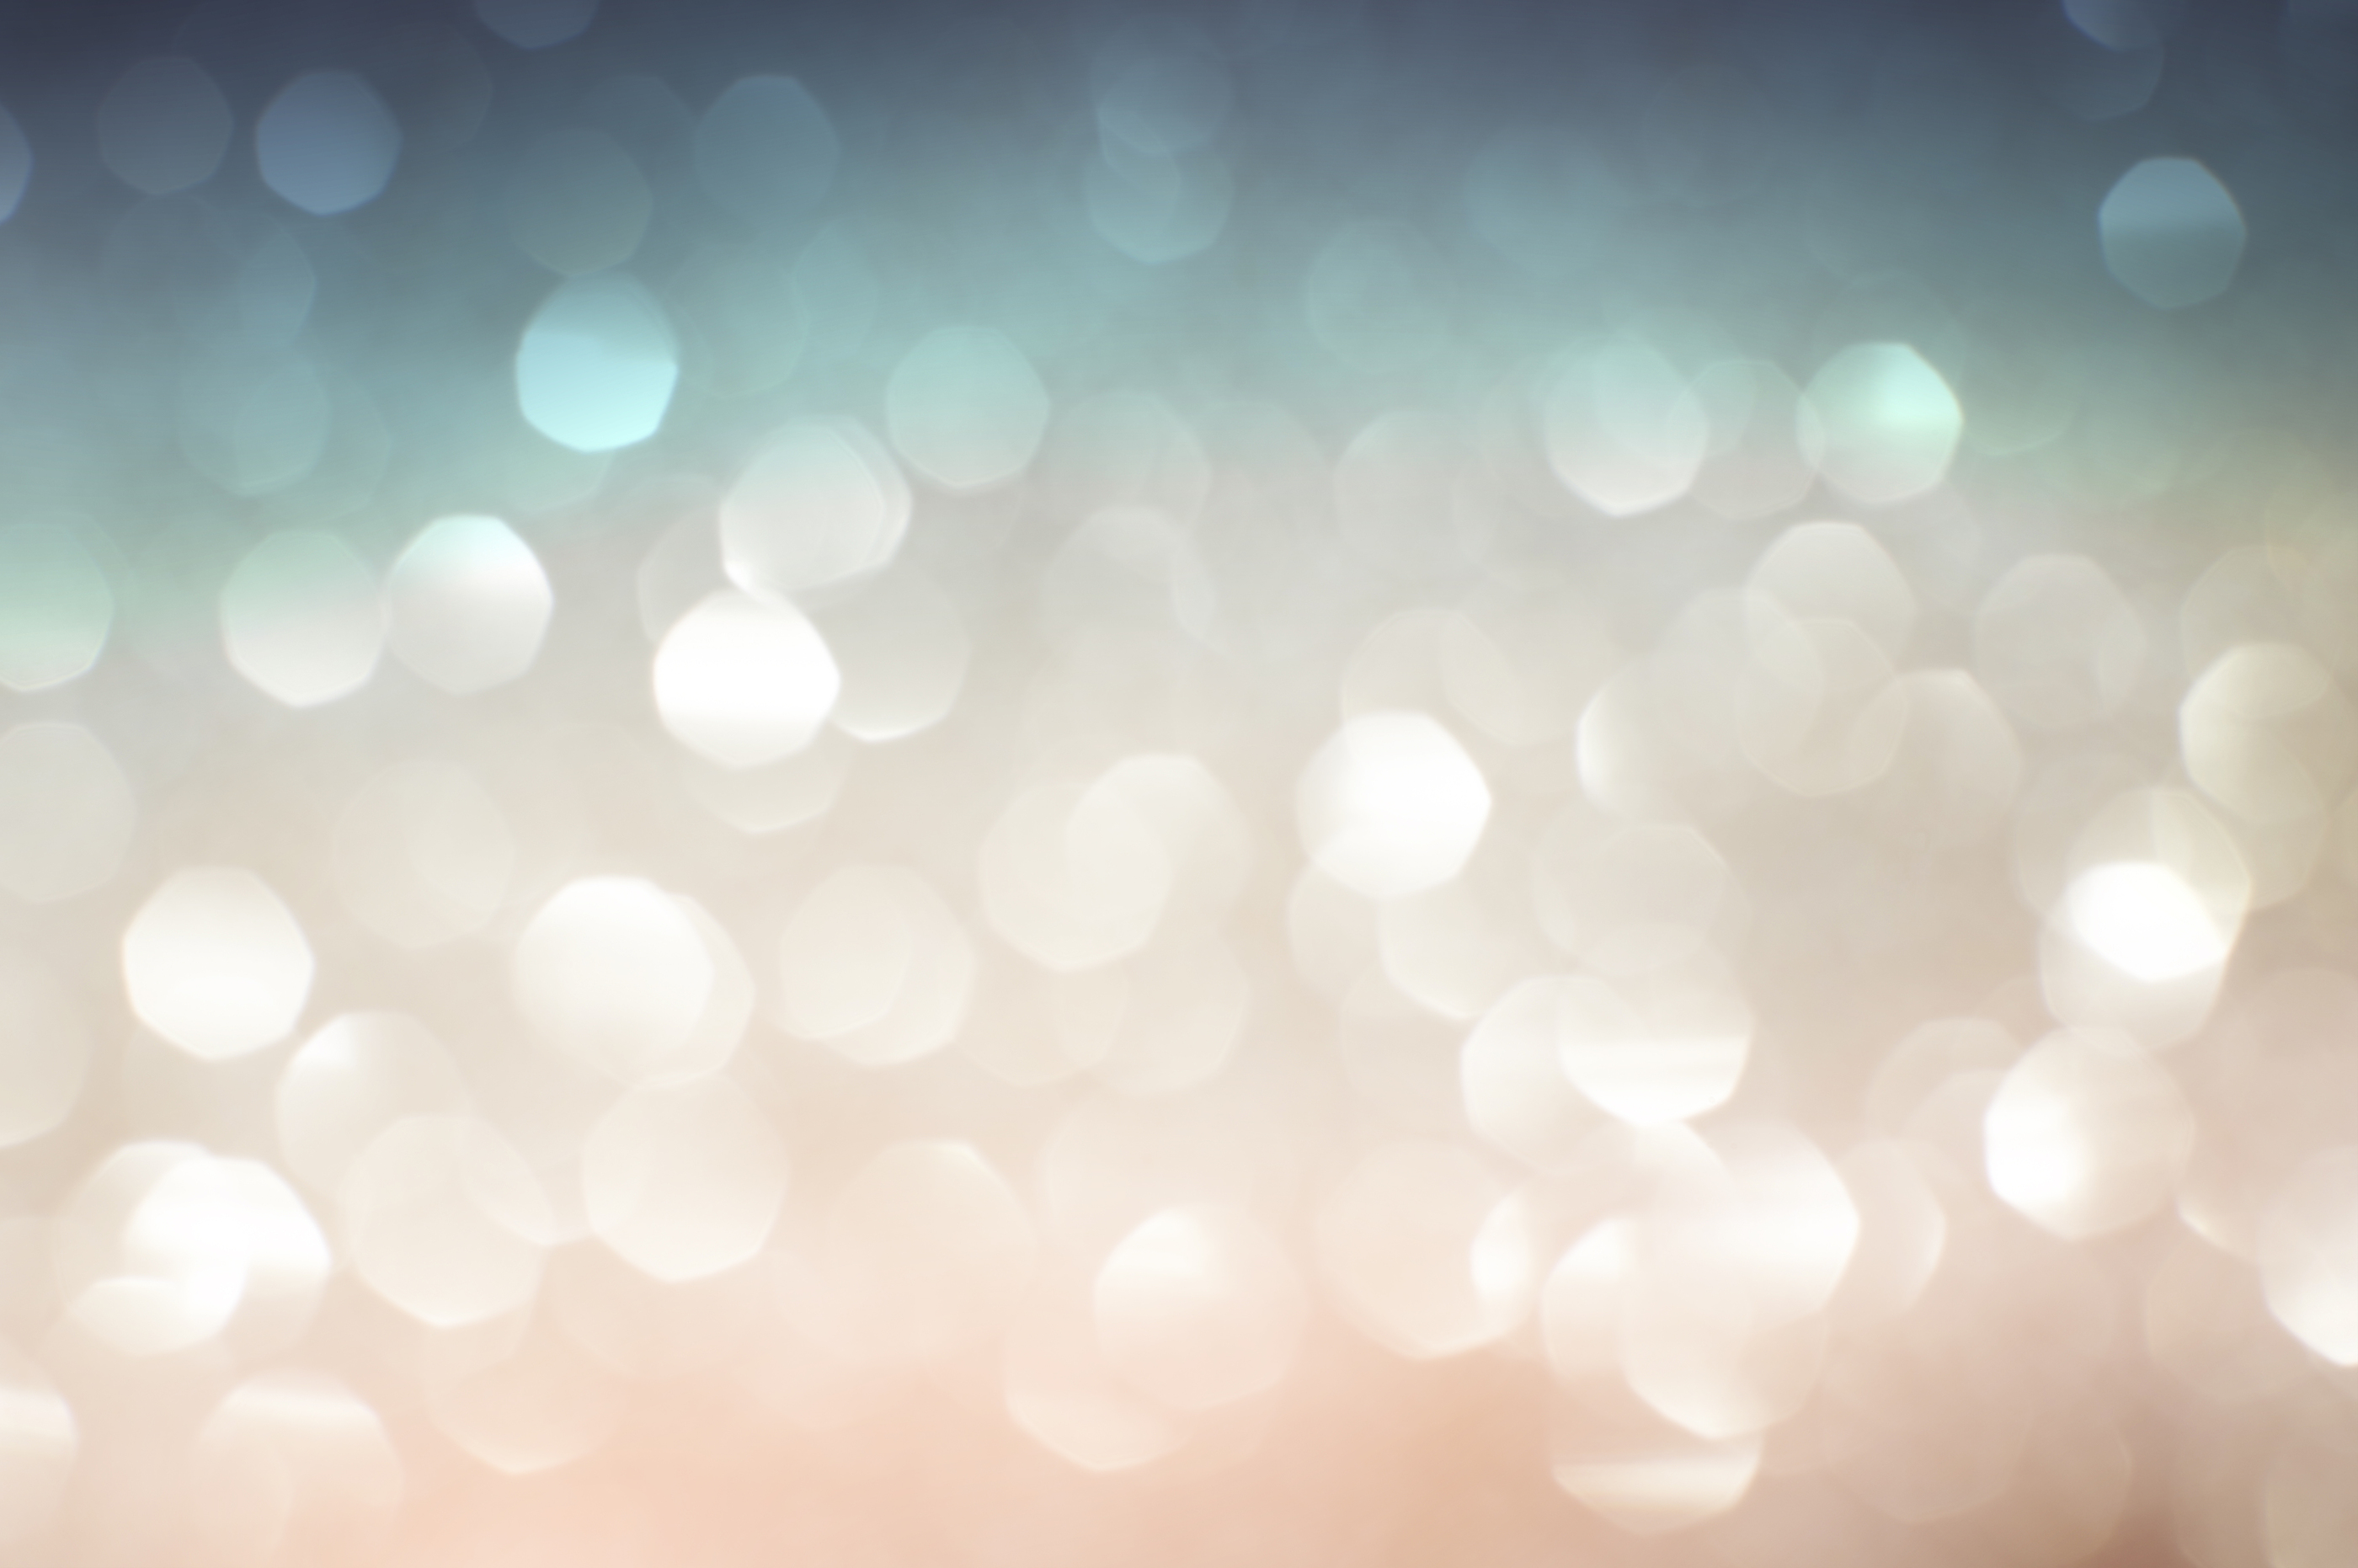 pastel colored defocused Christmas lights. Blurred abstract background